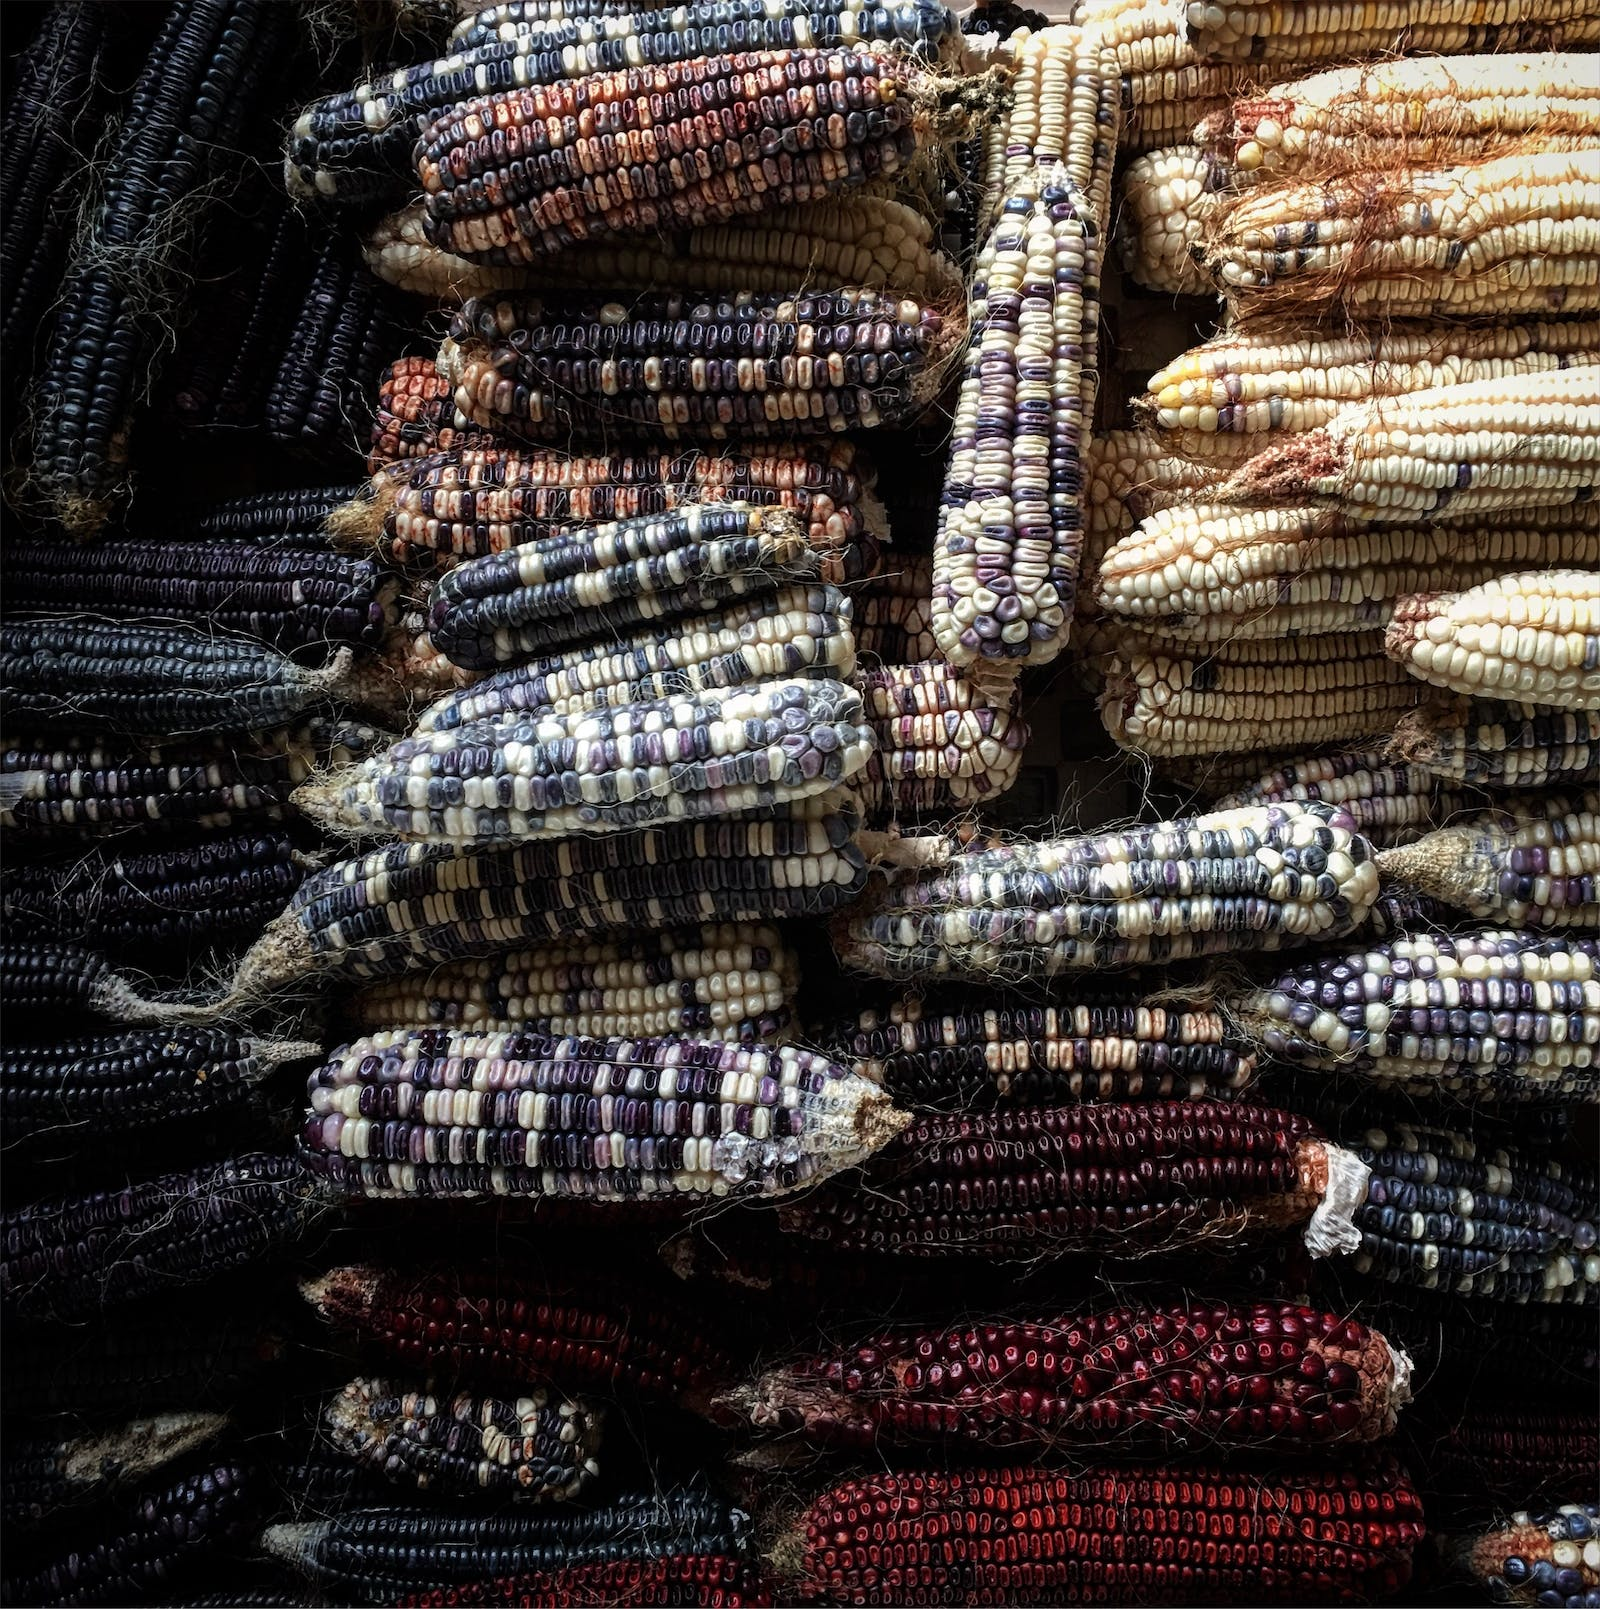 Multiple colors of harvested corn